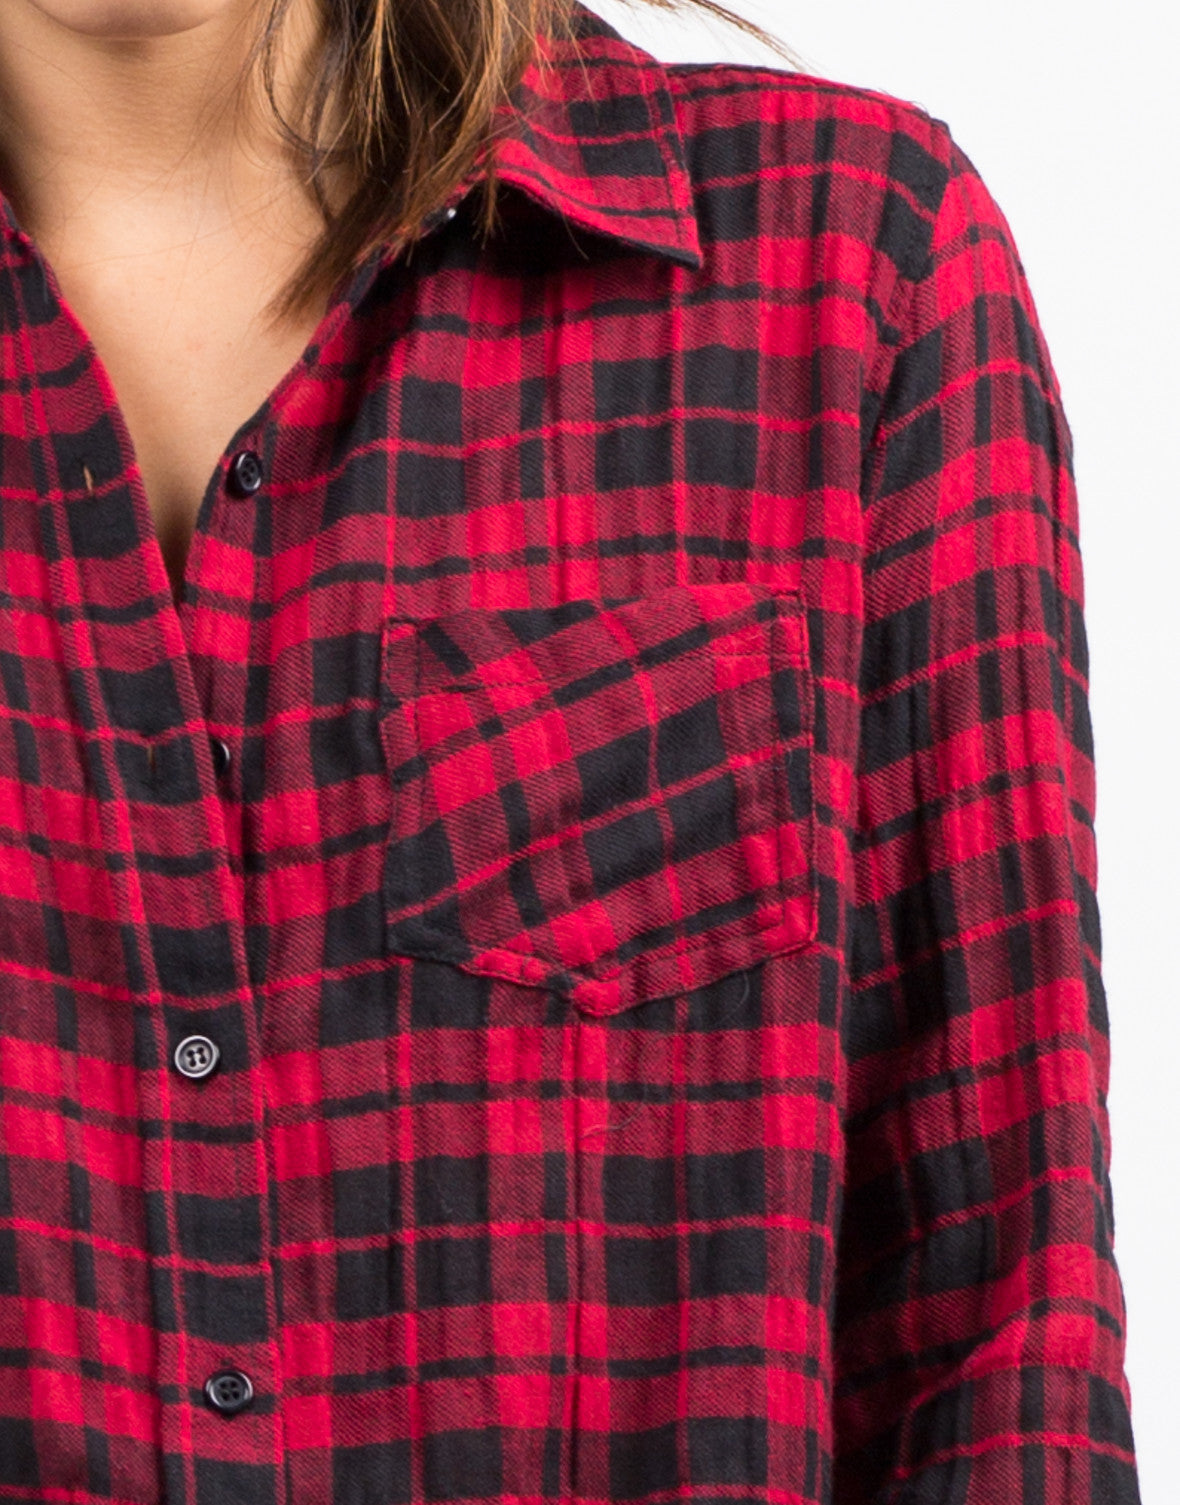 Detail of Lumberjack Plaid Shirt